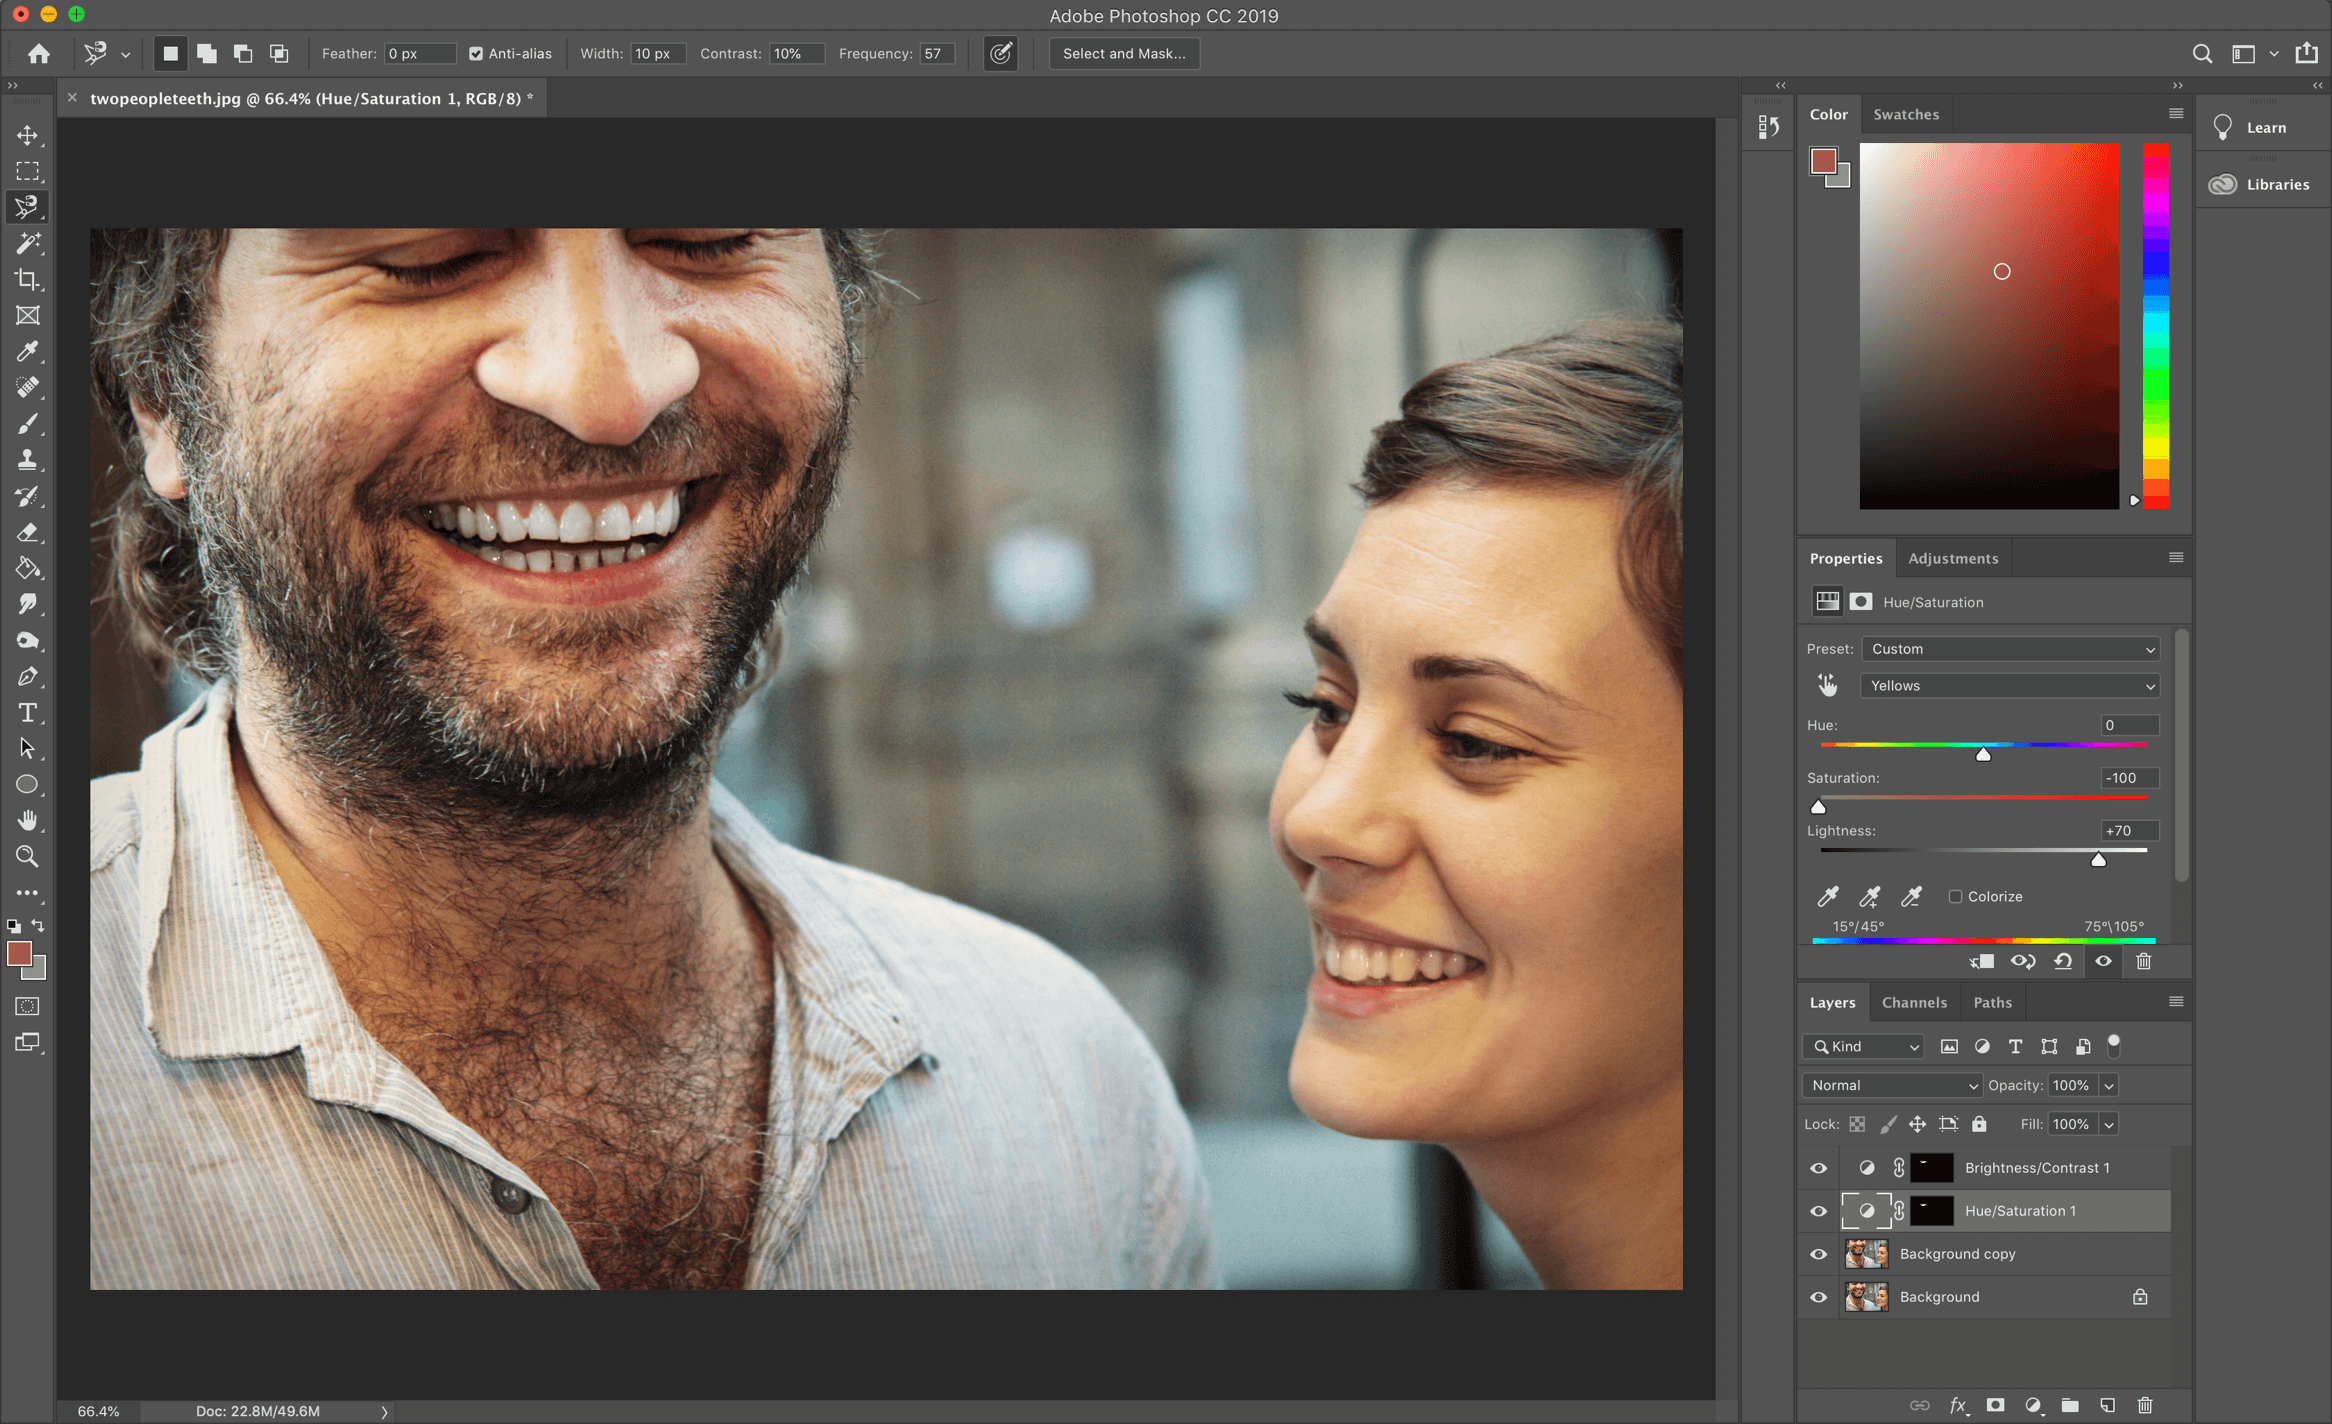 two people smiling in Photoshop